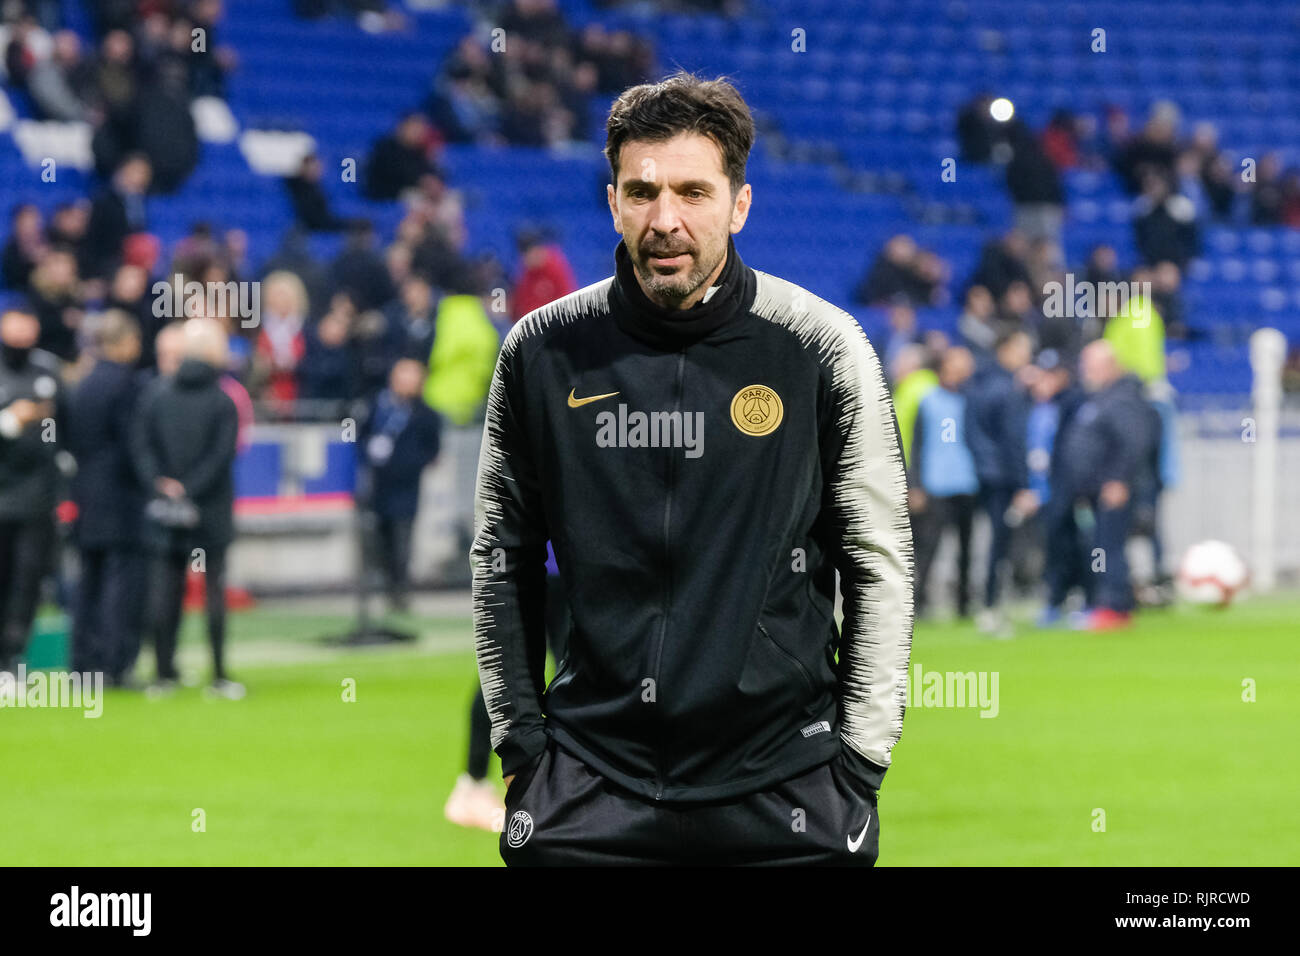 Gianluigi Buffon, goal warming up with your hands in your pockets. - Stock Image